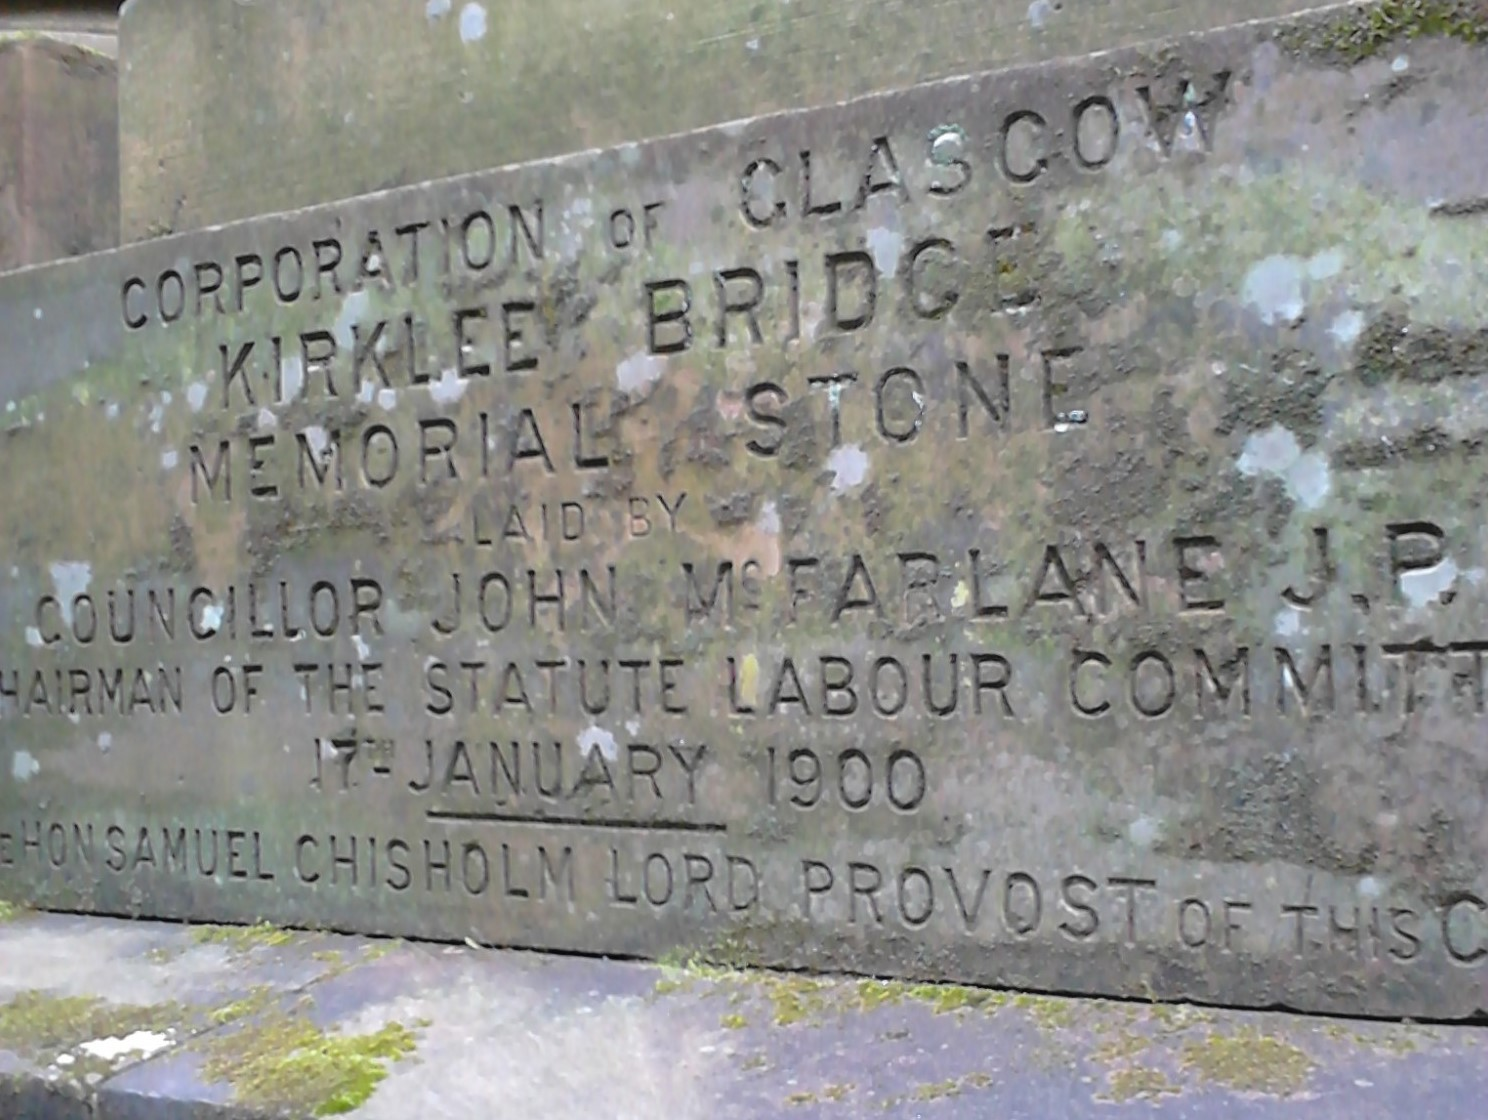 Glasgow Botanic Gardens, Kirklee Bridge Memorial